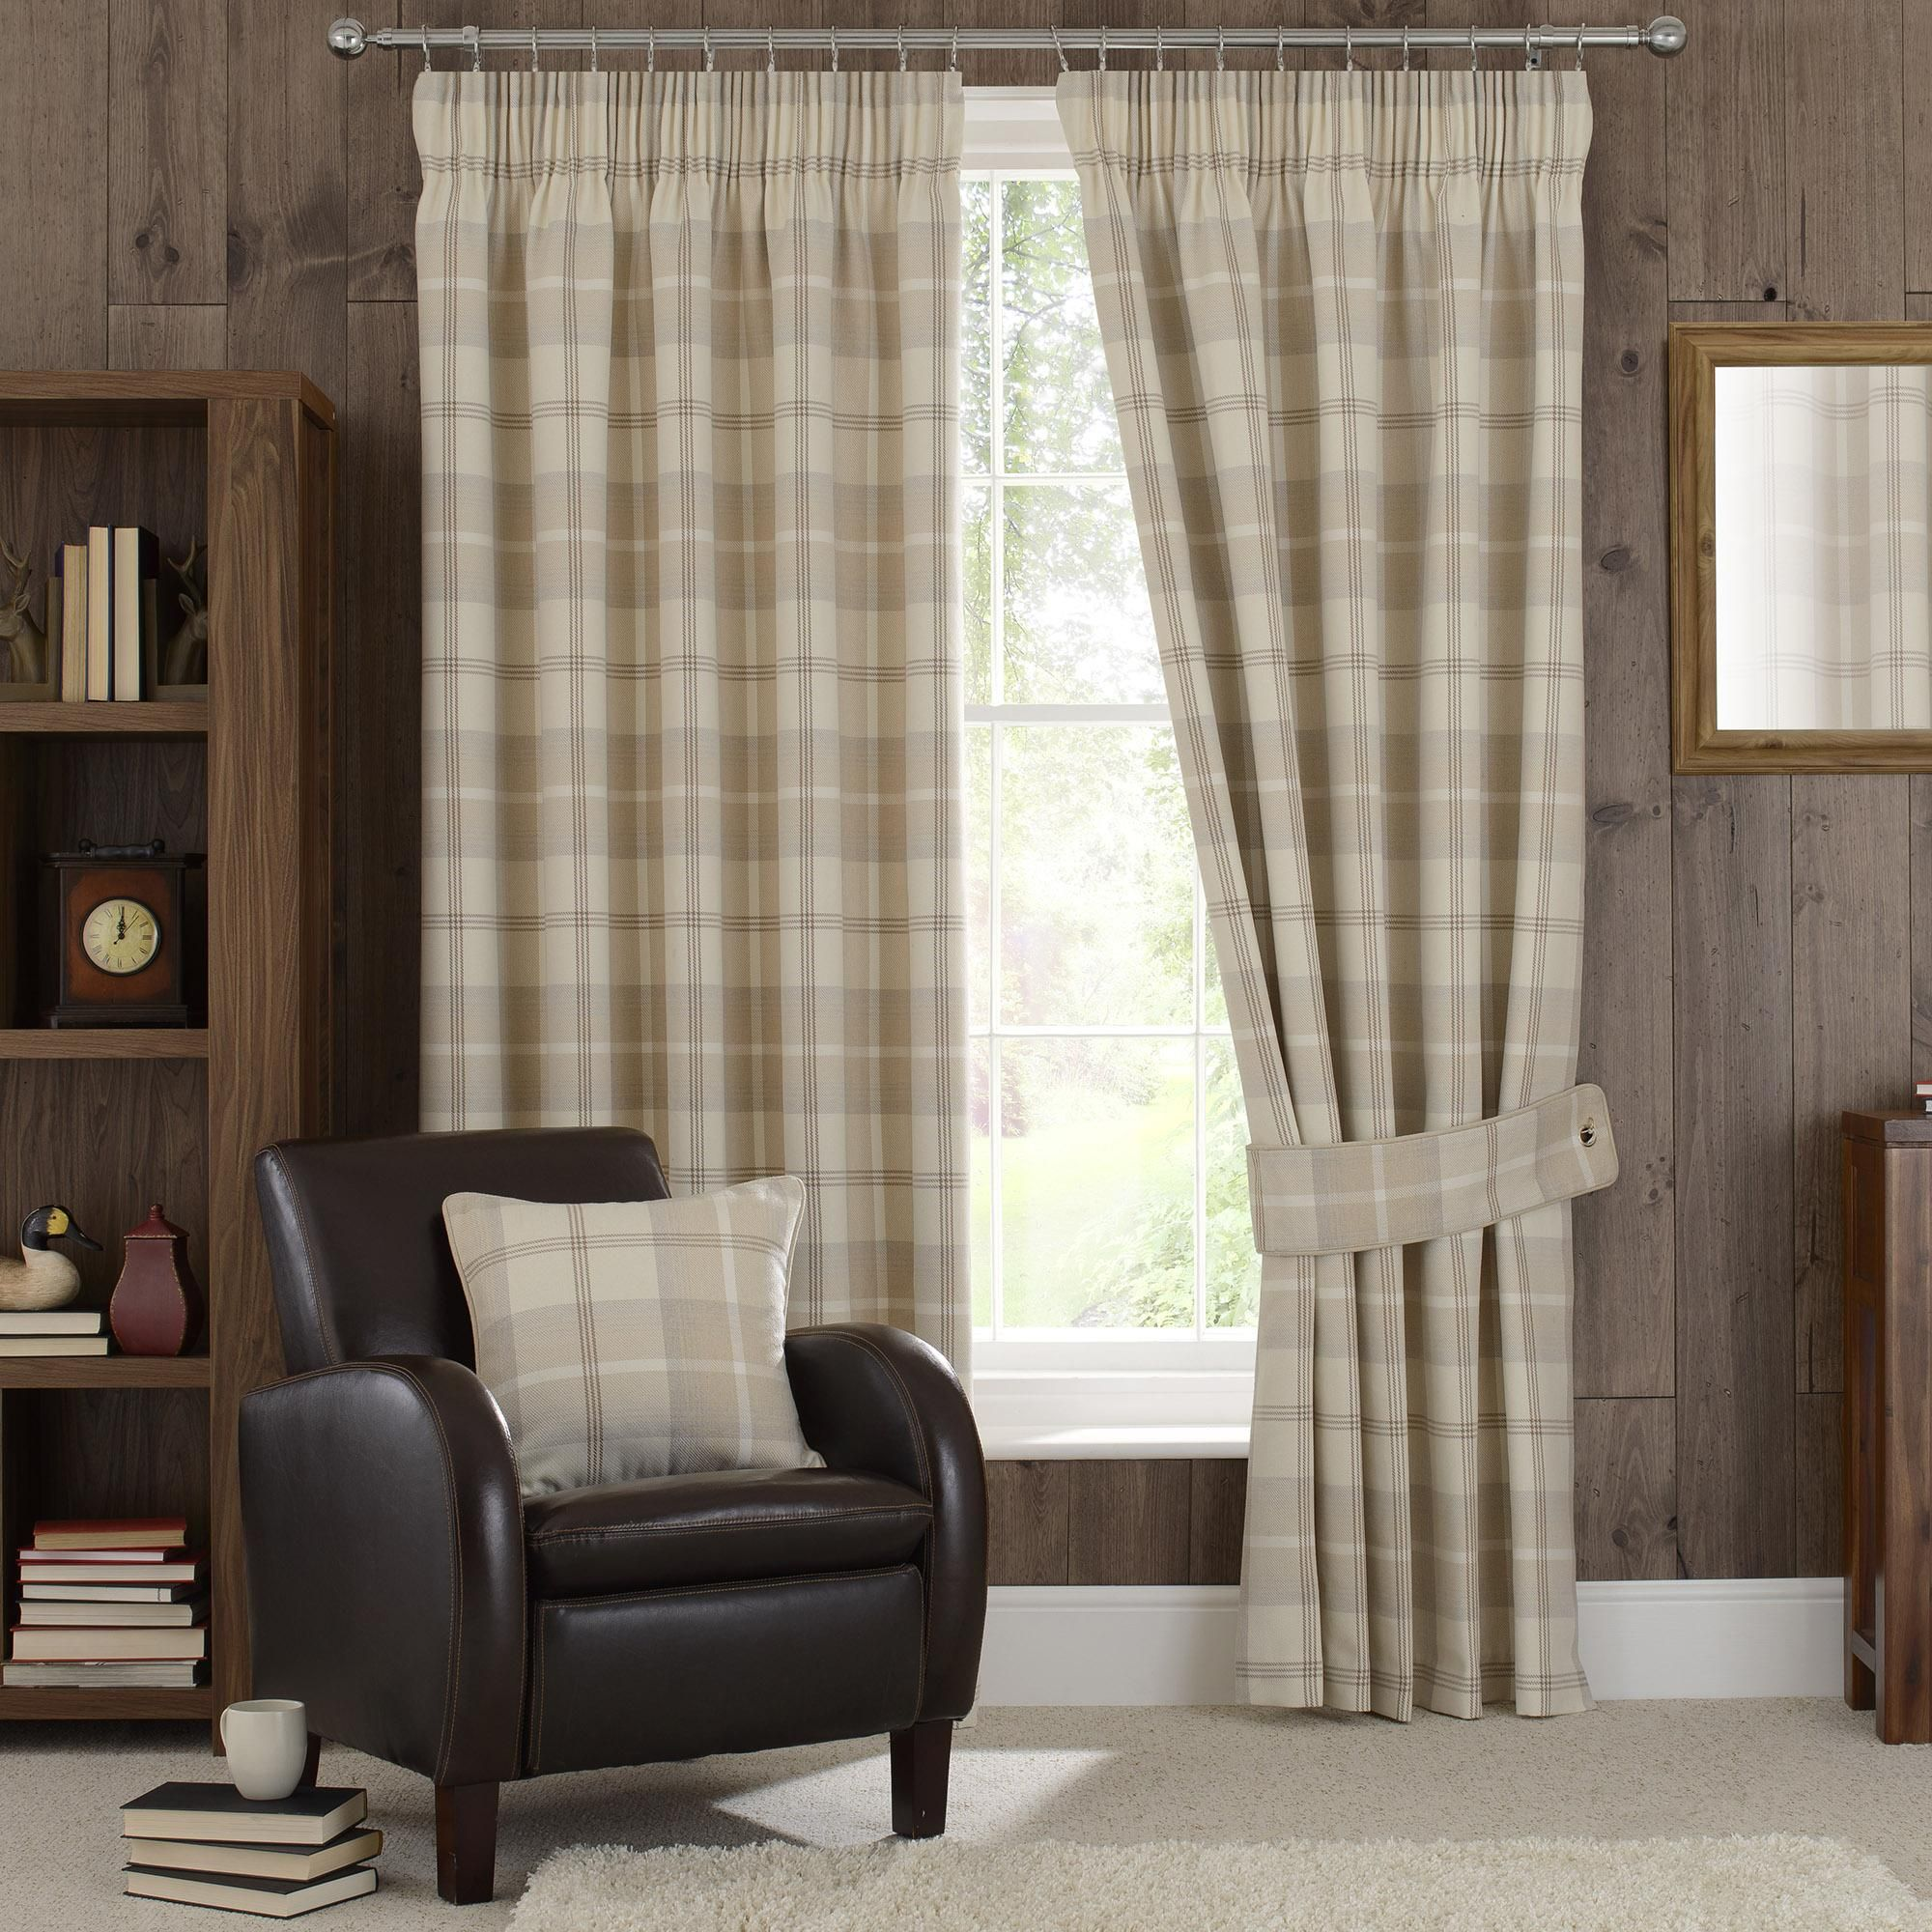 Highland Check Natural Pencil Pleat Curtains Pleated Curtains Natural Eyelet Curtains Stylish Curtains